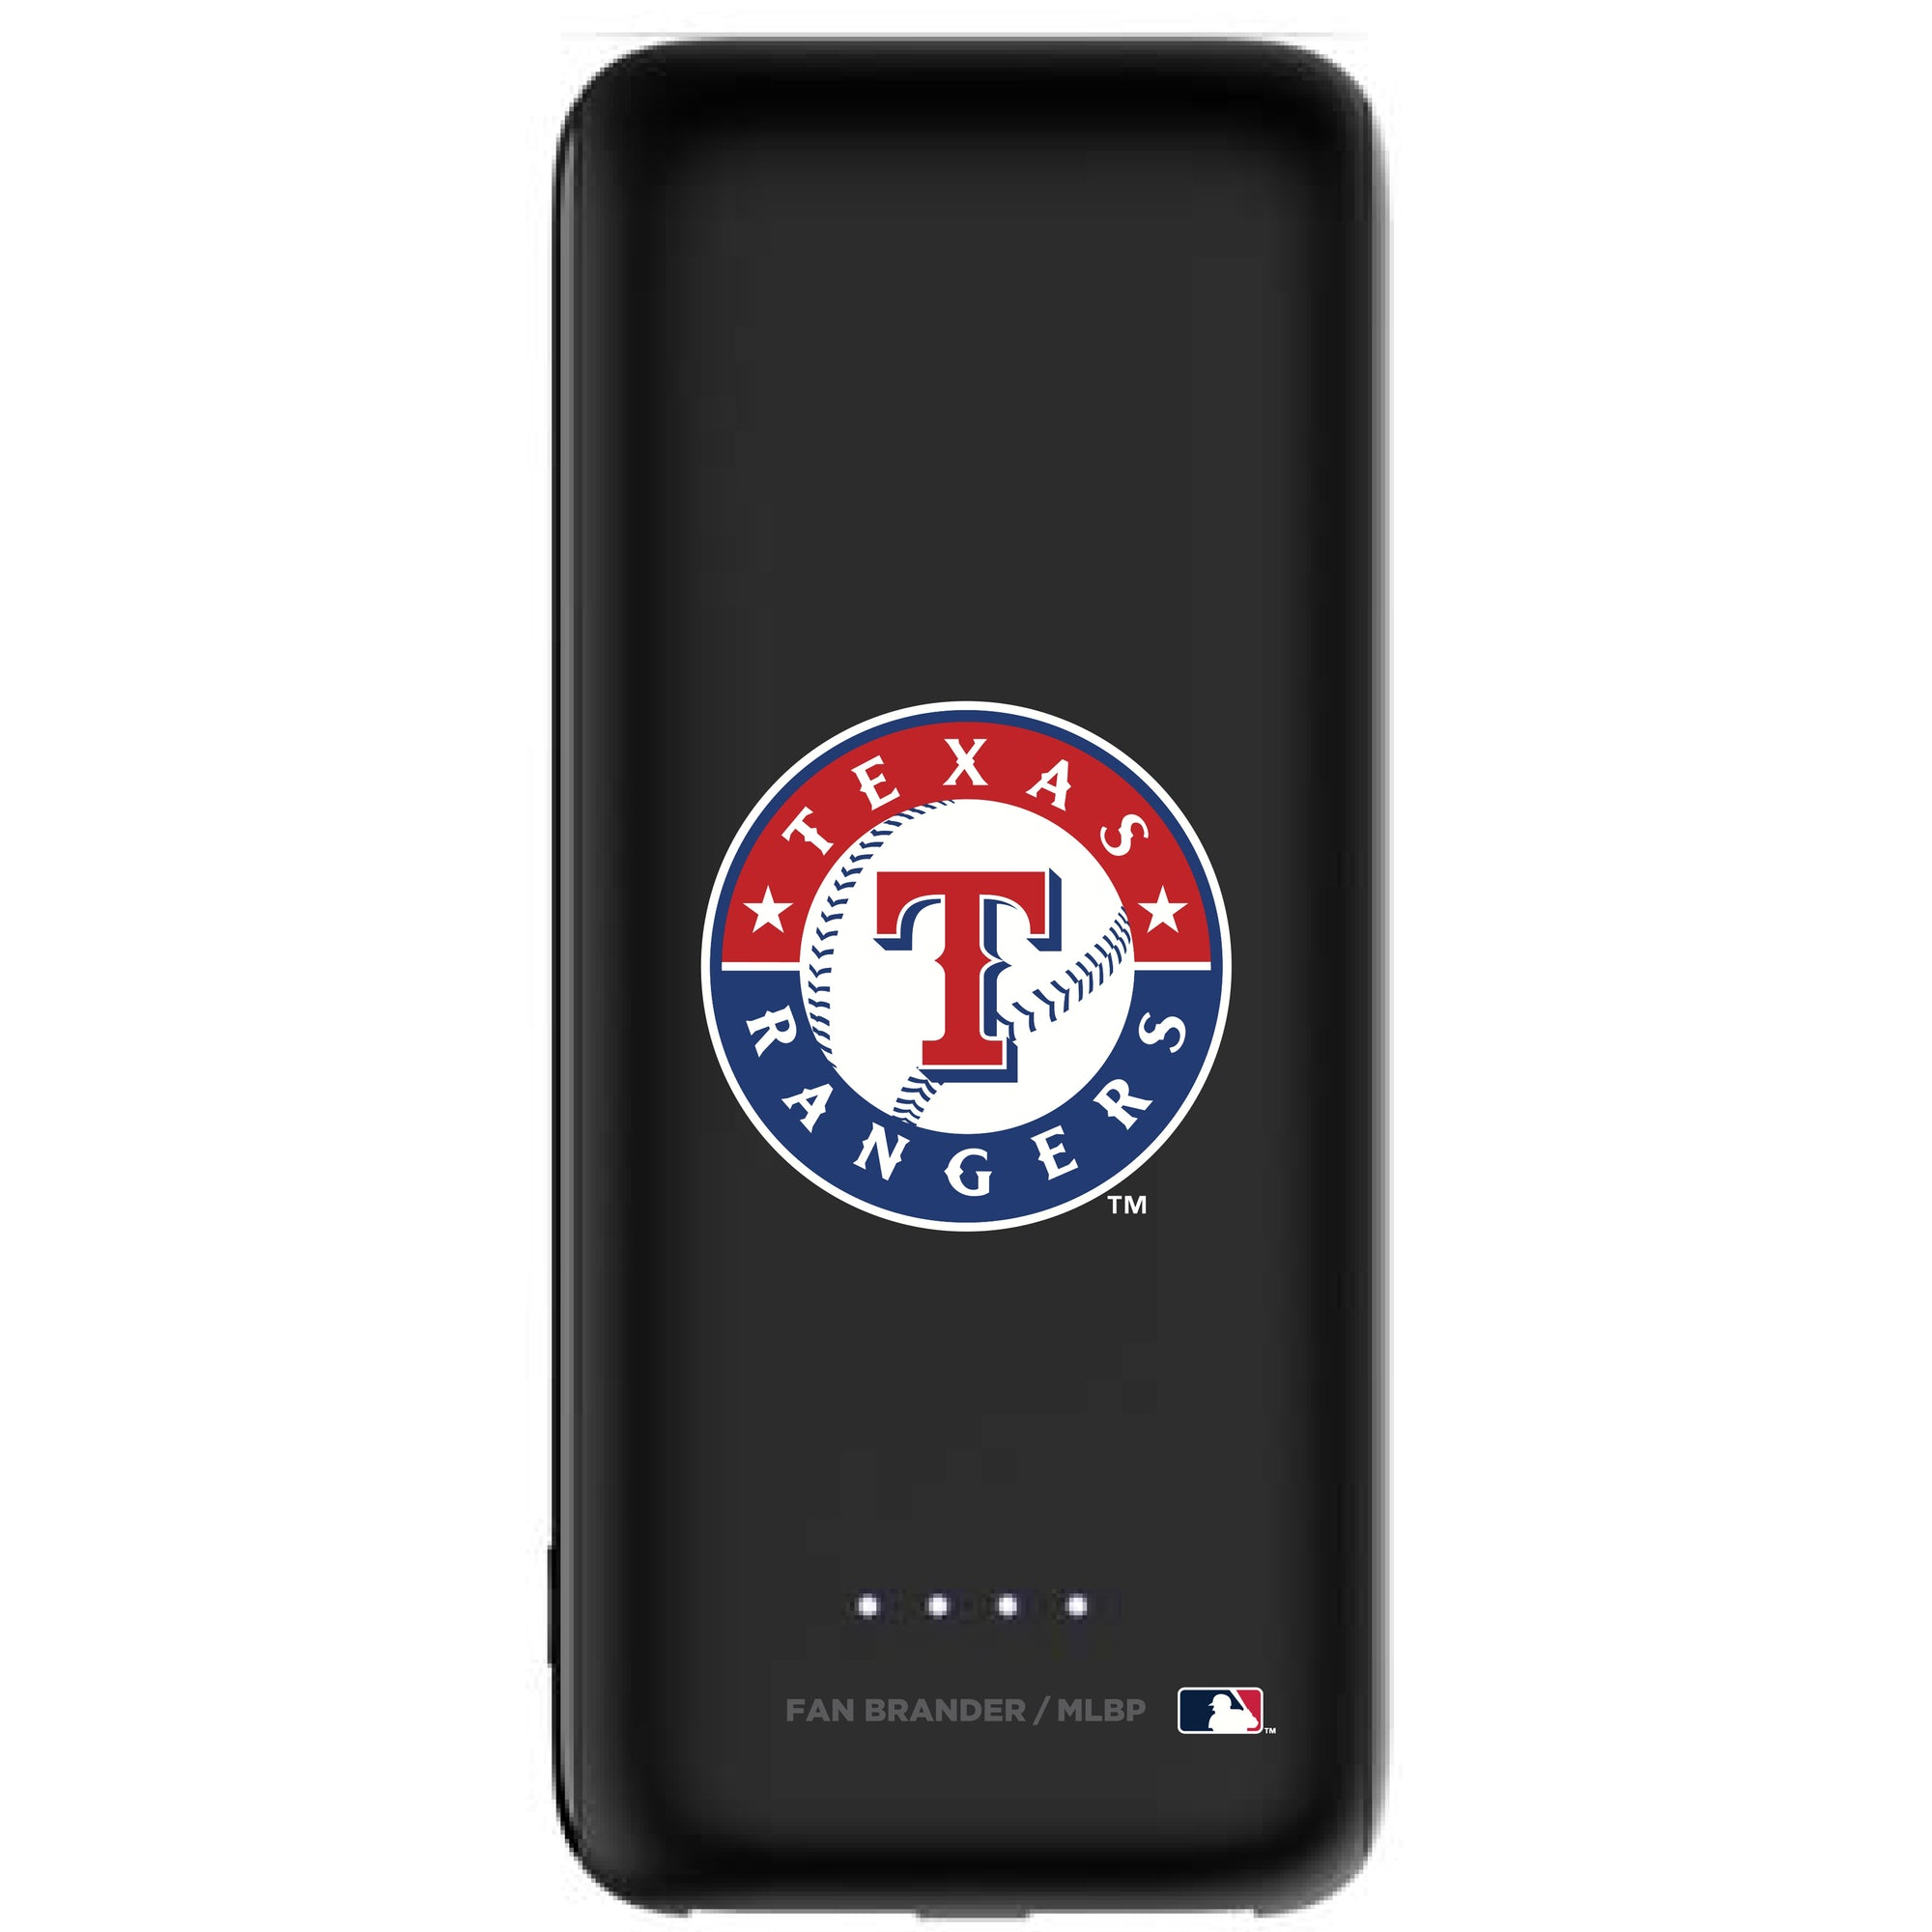 Texas Rangers Power Boost Mini 5,200 mAH